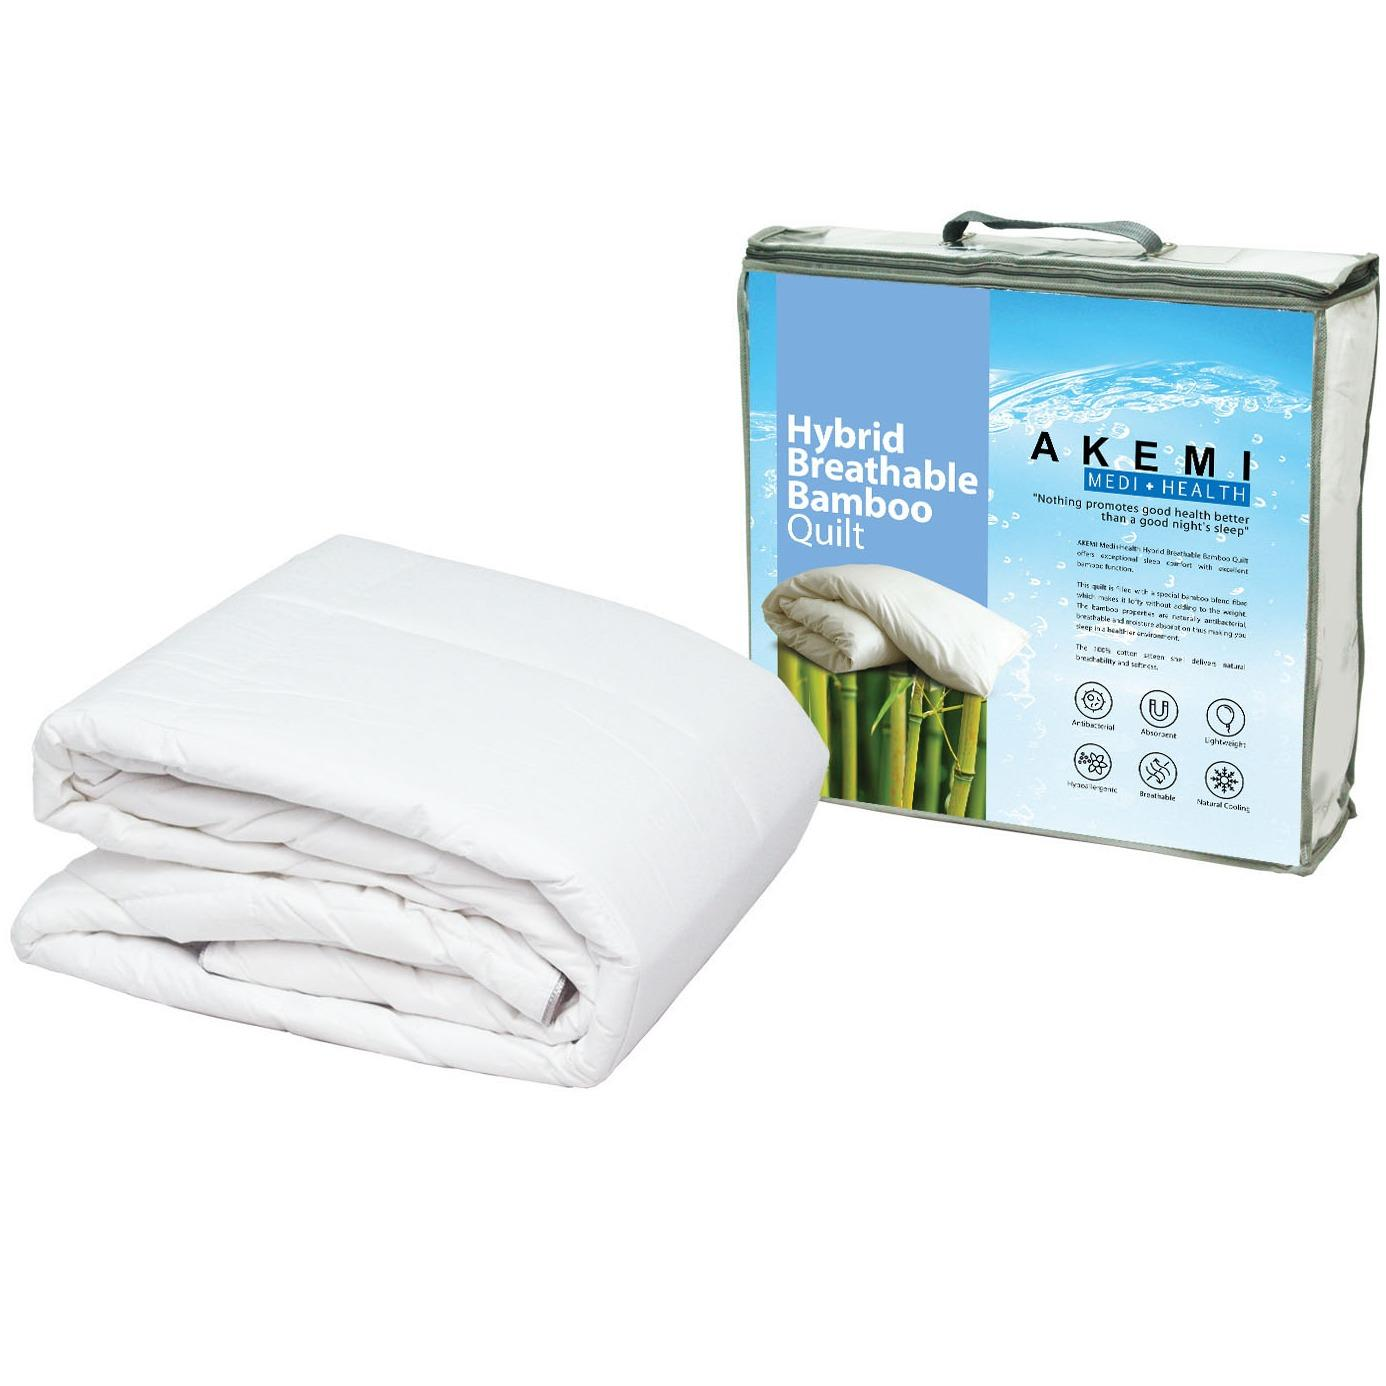 Akemi Medi Health Hybrid Breathable Bamboo Quilt Price Comparison